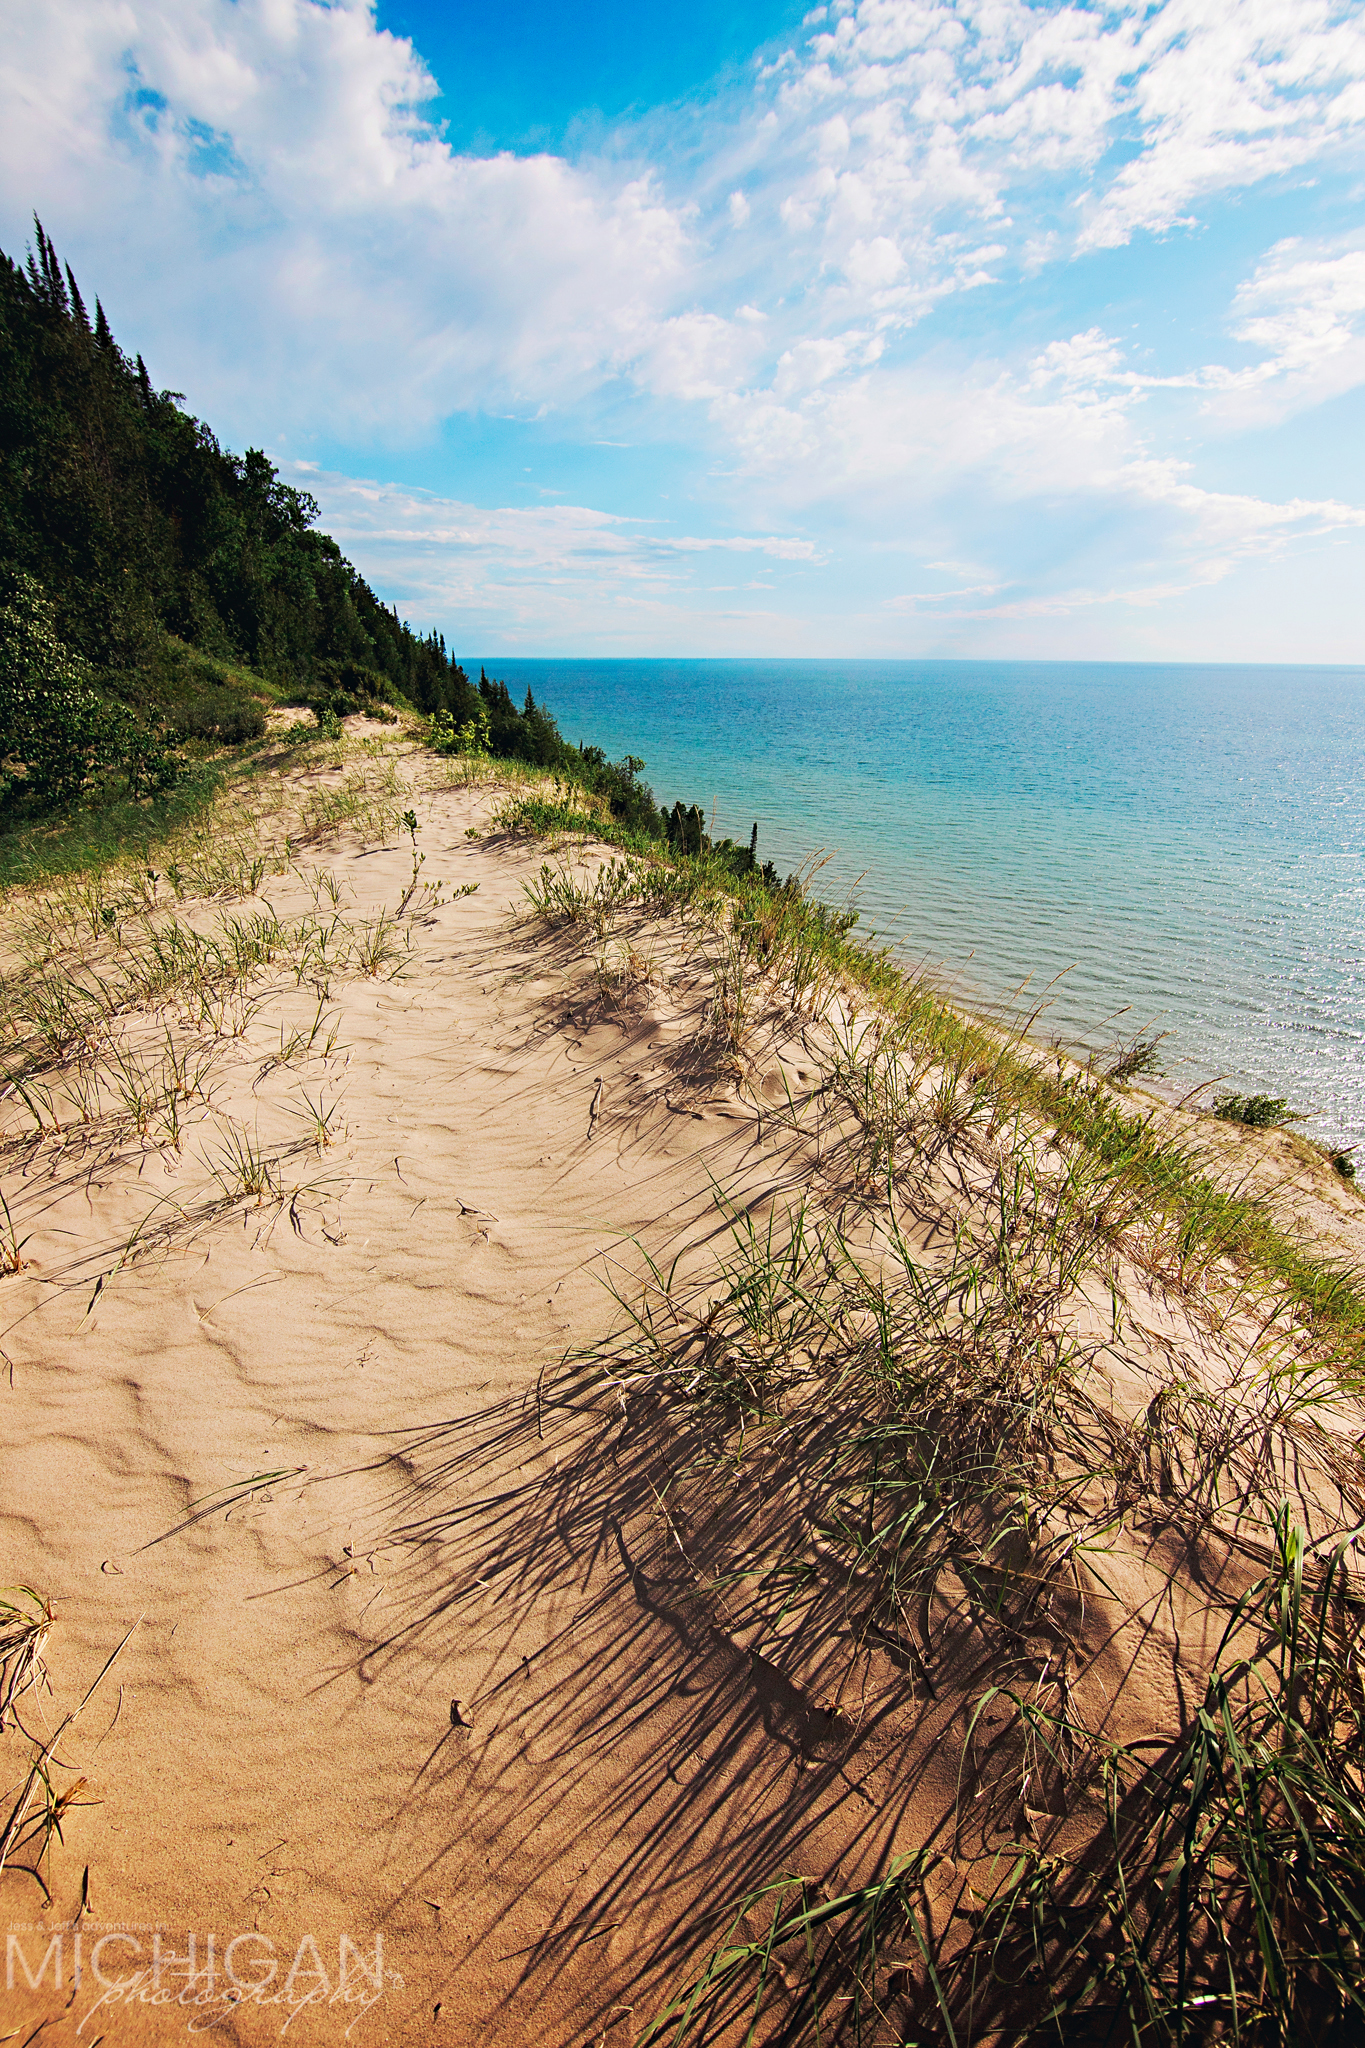 The view south from the Old Baldy Dune.